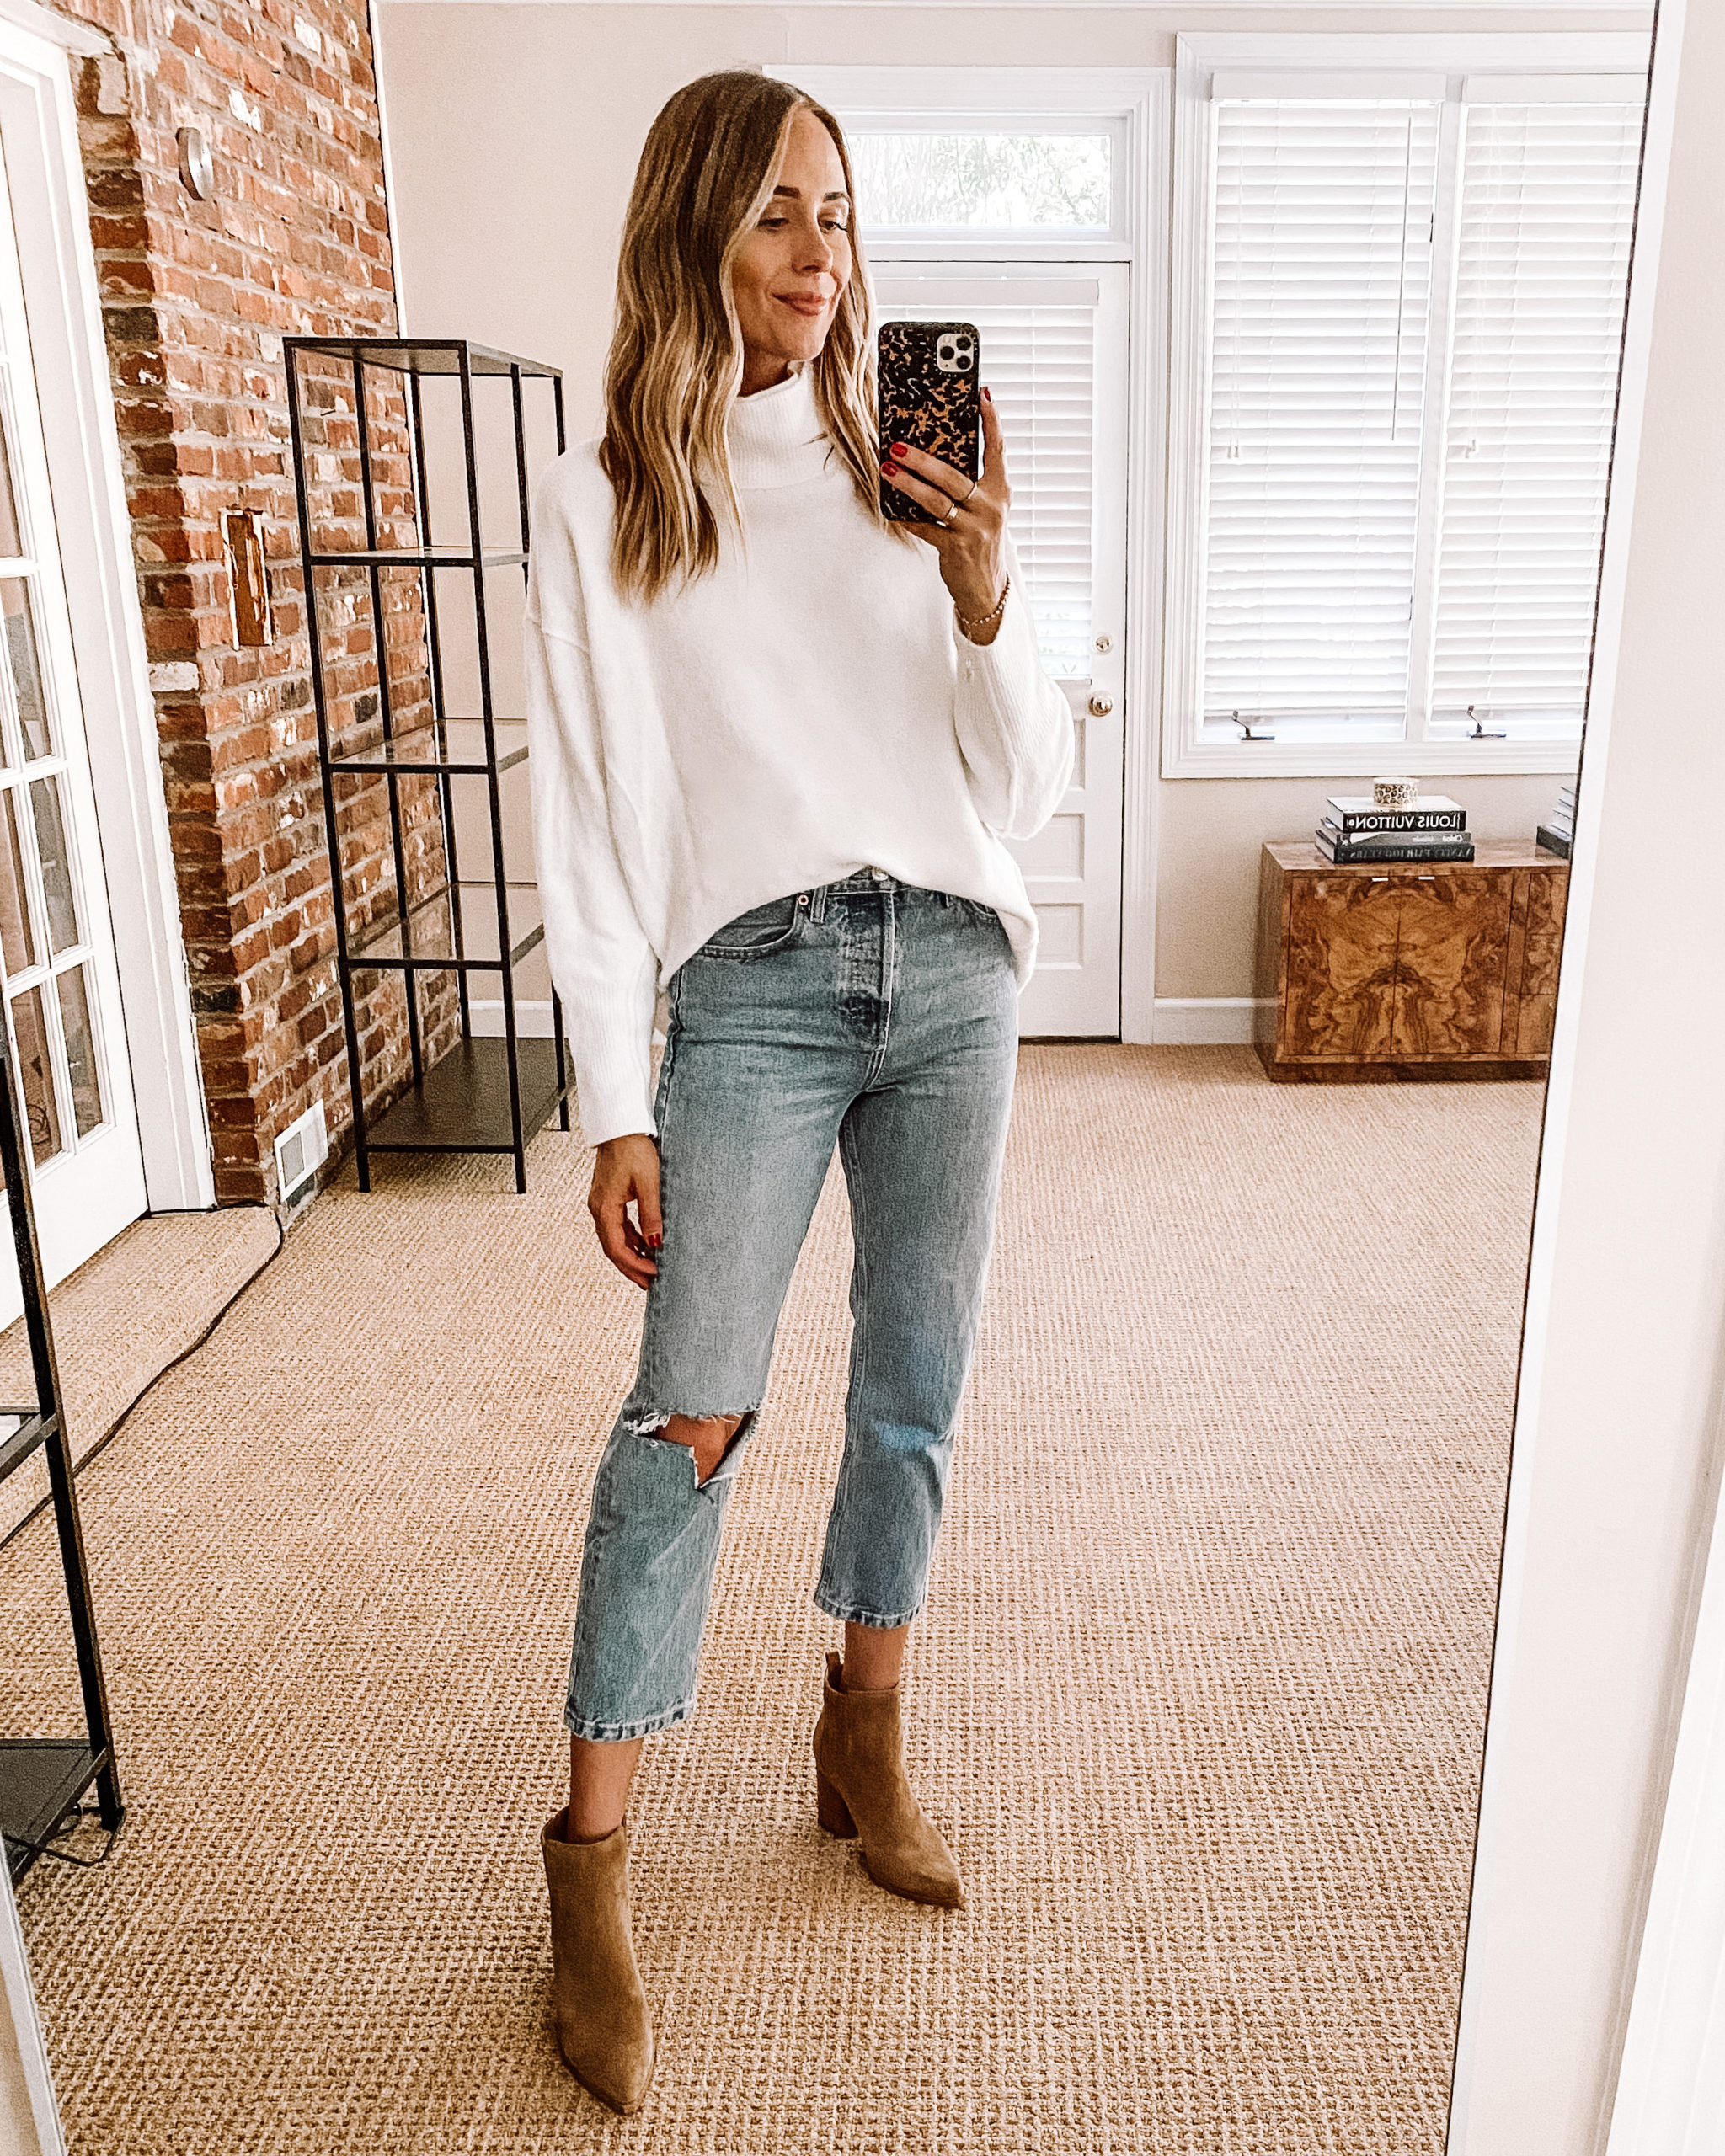 Fashion Jackson Nordstrom Anniversary Sale Free People Afterglow Mock Neck Top White Tunic Sweater Topshop Ripped Jeans Tan Booties